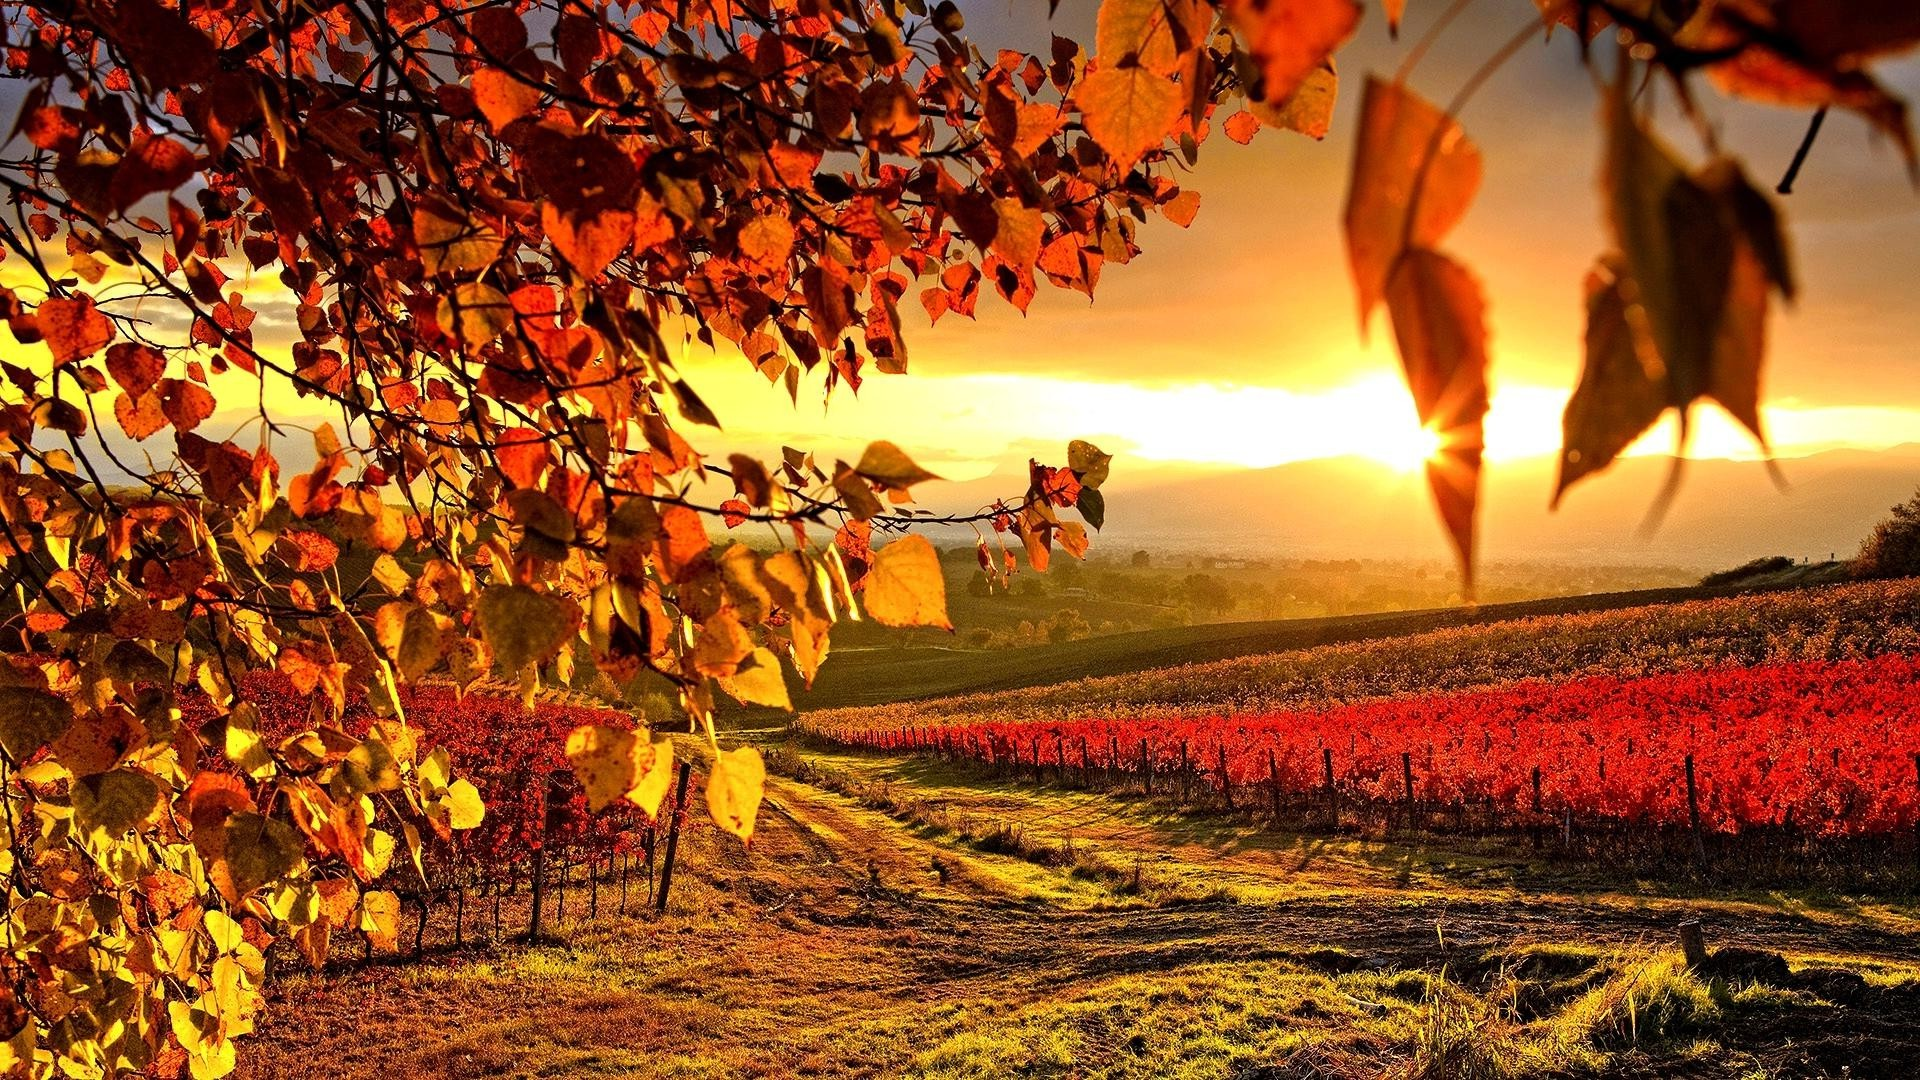 Fall Hd Wallpapers 1080p Widescreen Vineyard Nature Landscape Sunlight Wallpapers Hd